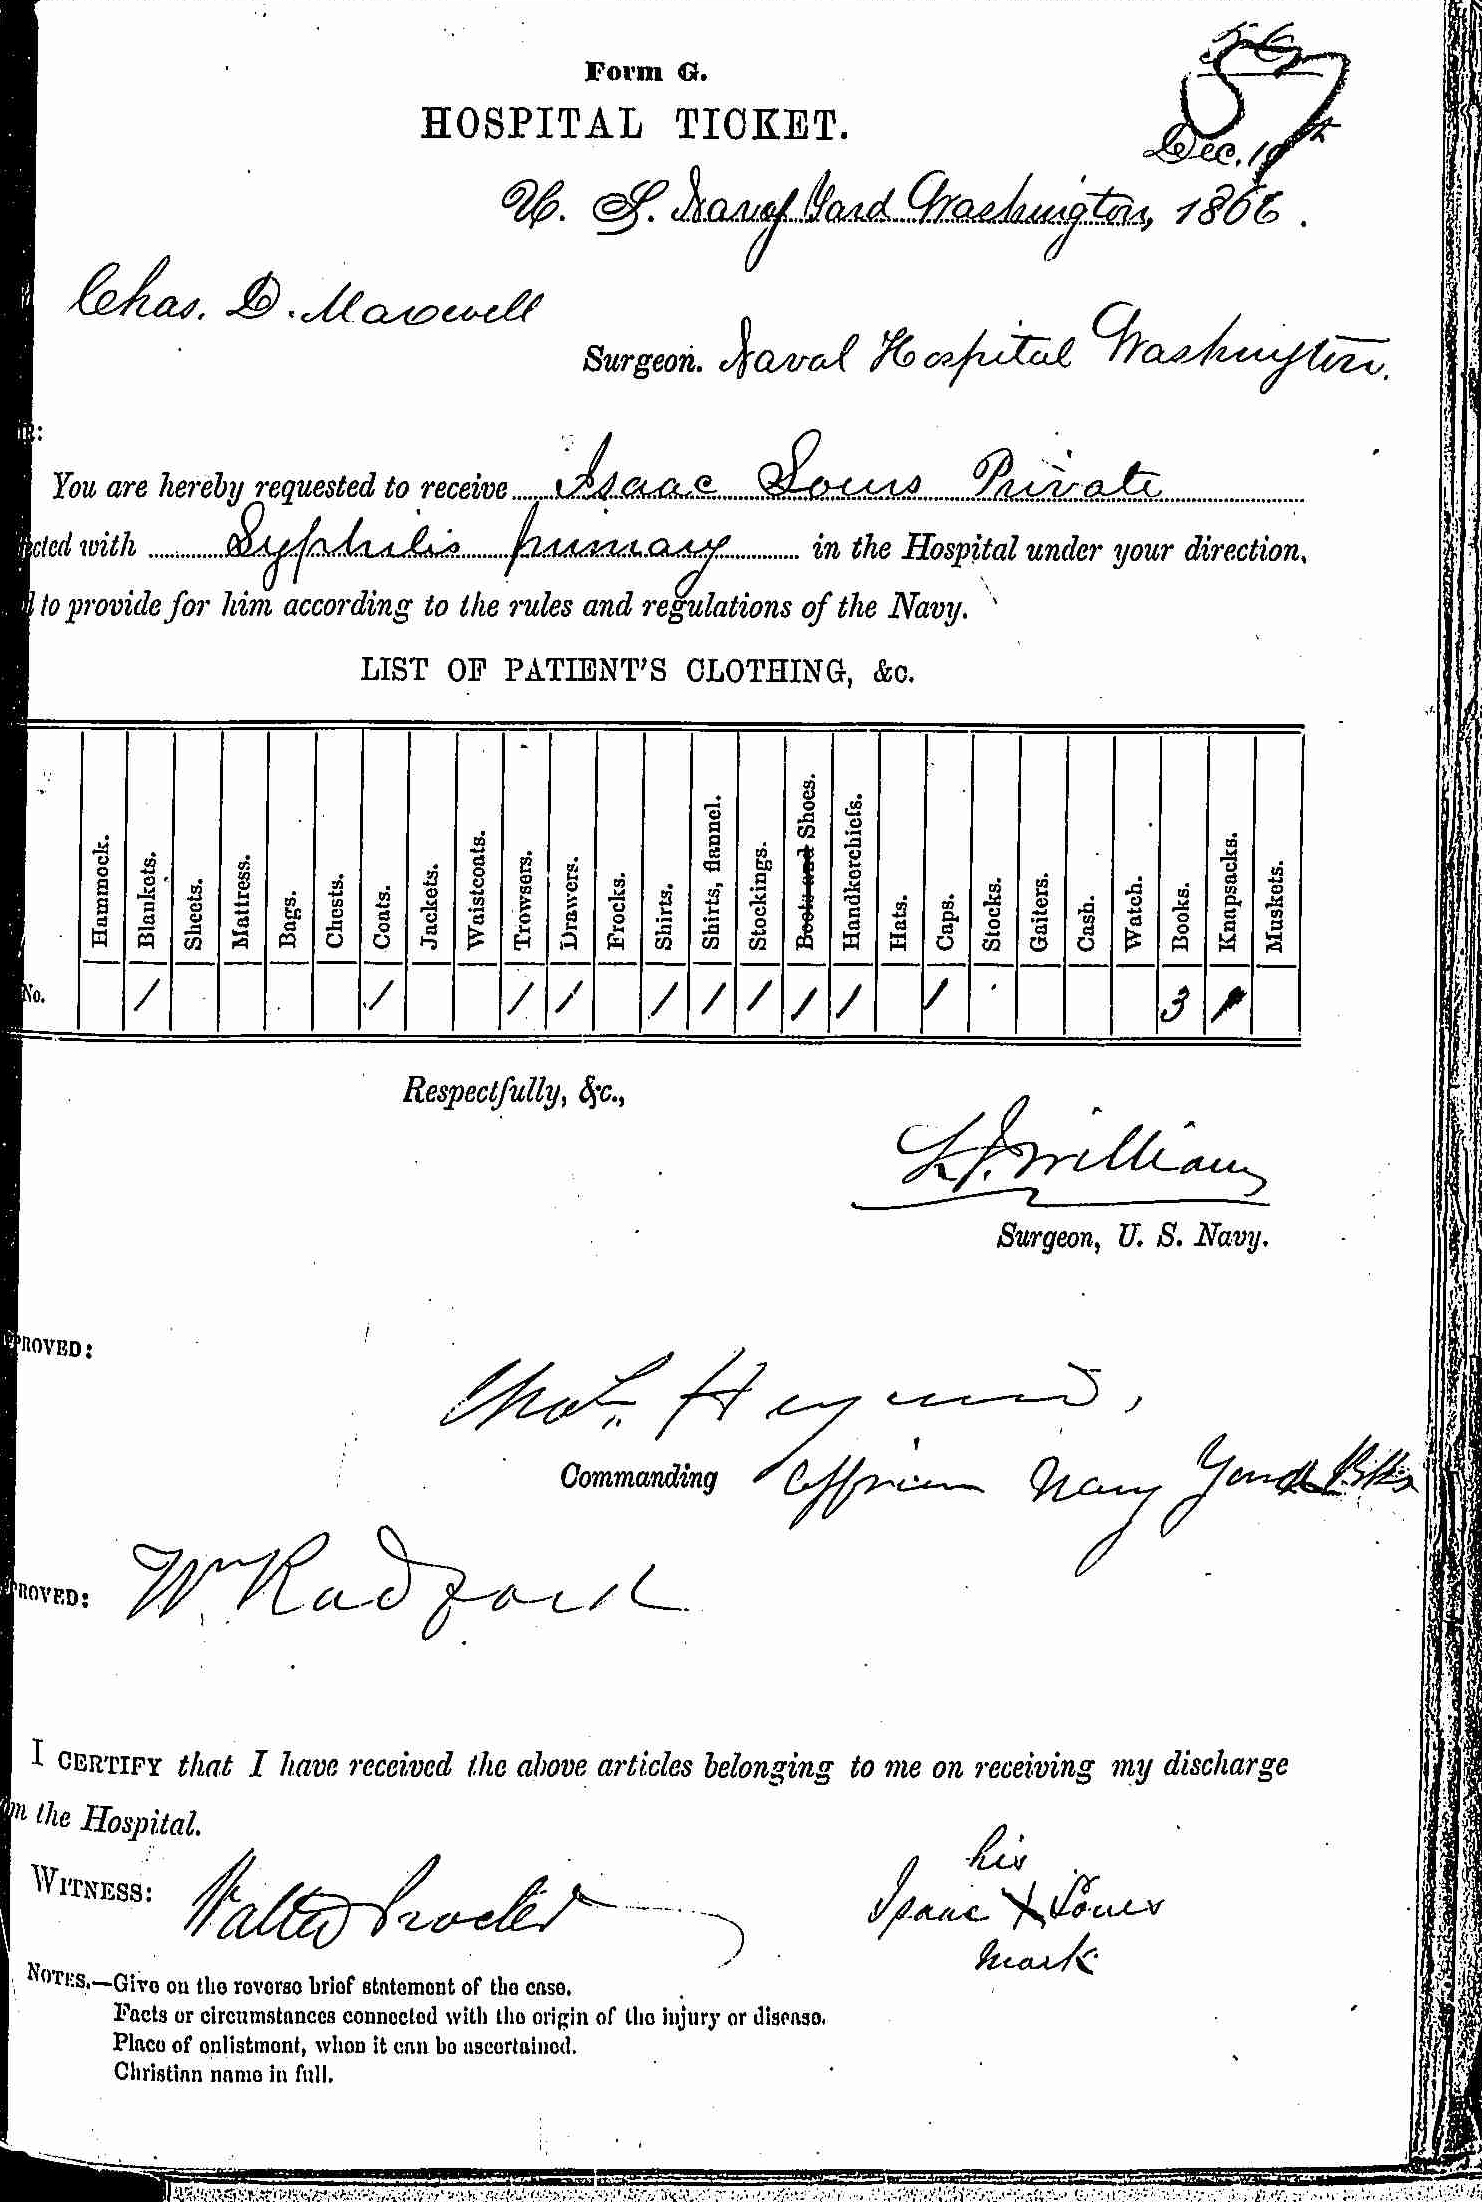 Entry for Isaac Sours (first admission page 1 of 2) in the log Hospital Tickets and Case Papers - Naval Hospital - Washington, D.C. - 1865-68